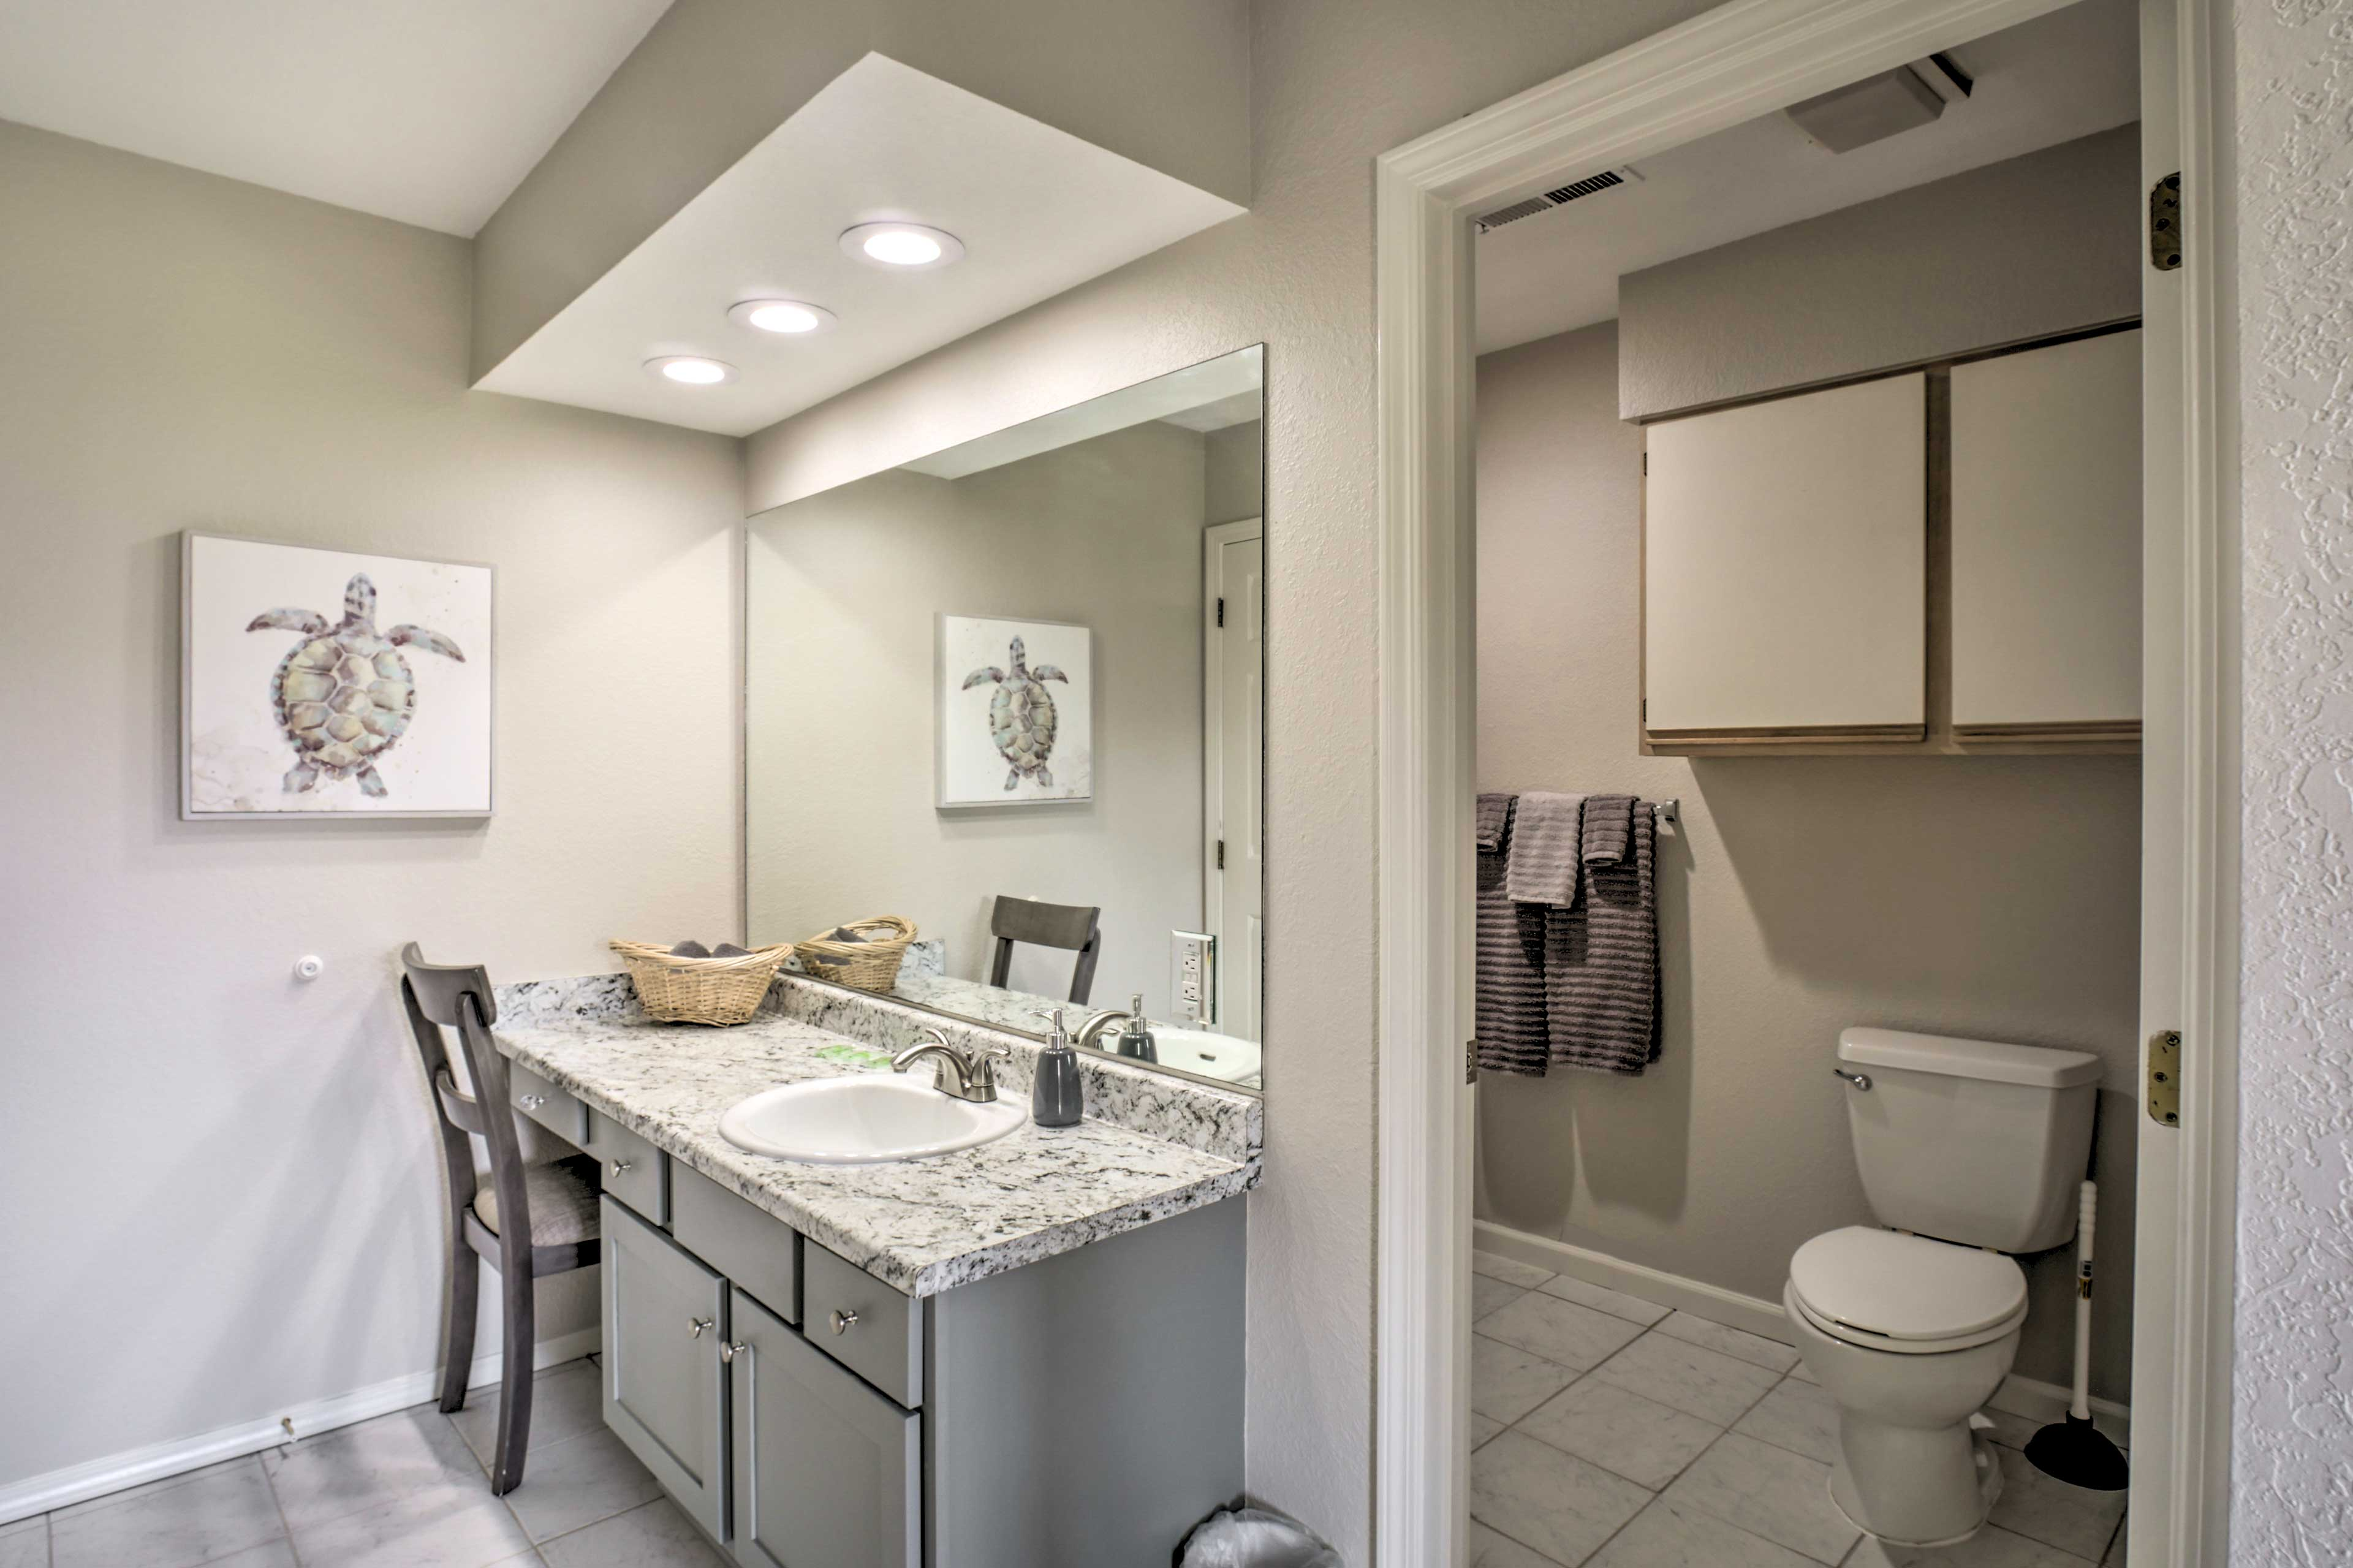 Get ready for a night out in the master en-suite bathroom.